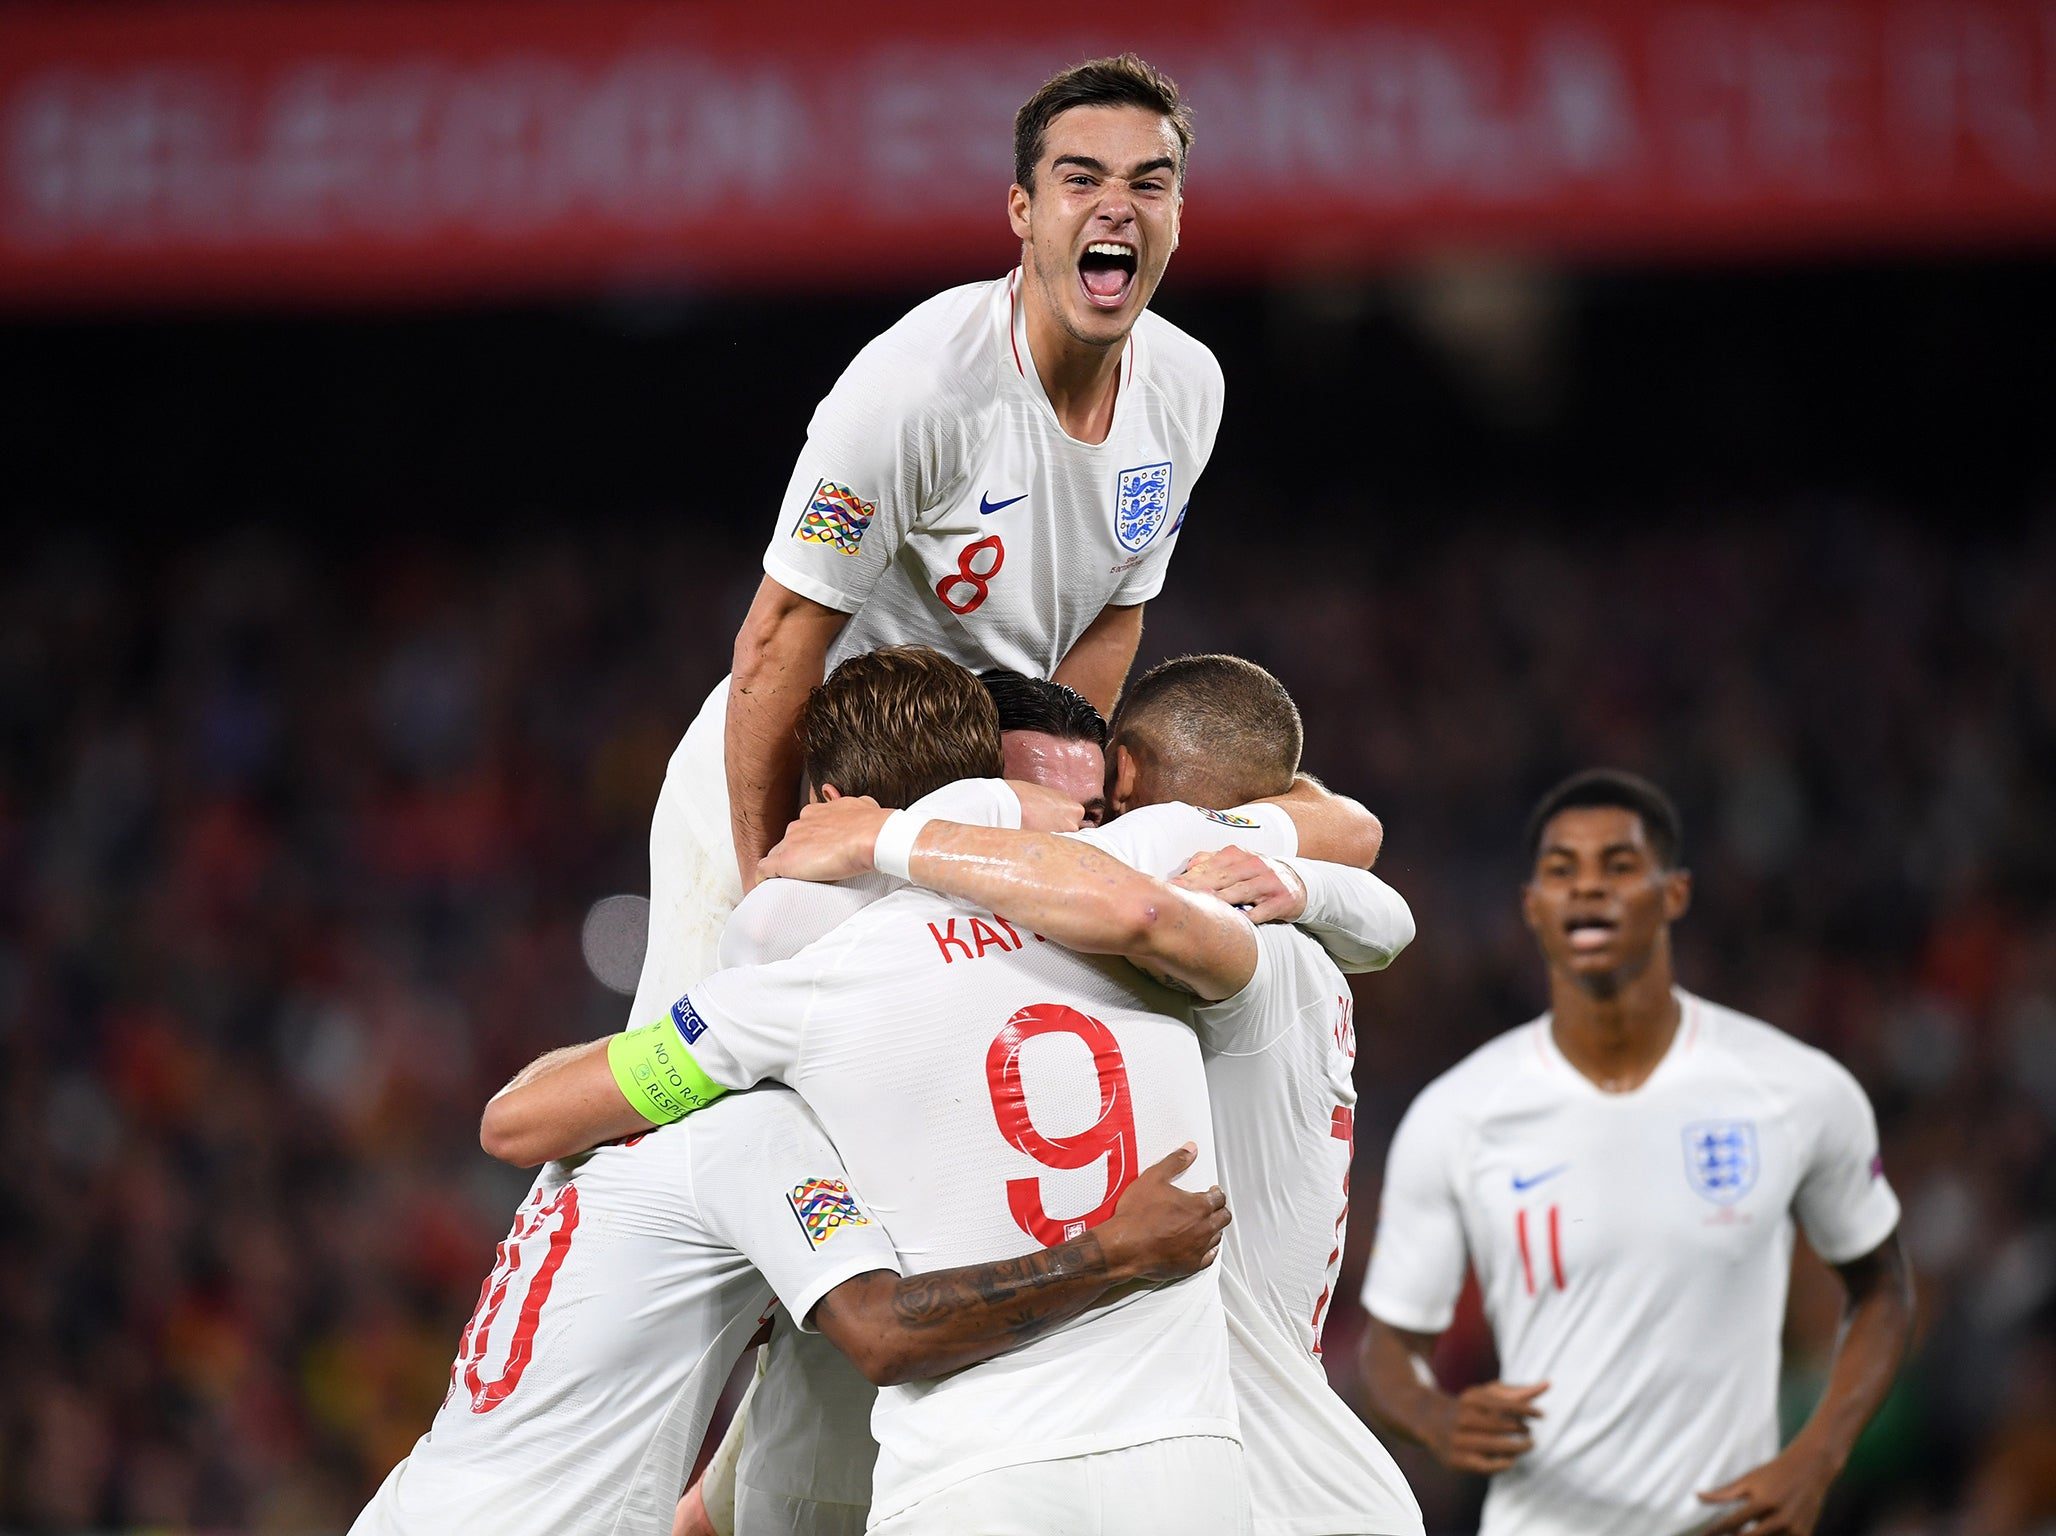 Spain vs England: Harry Winks enjoyed mixing it with the world's best - and he wants more